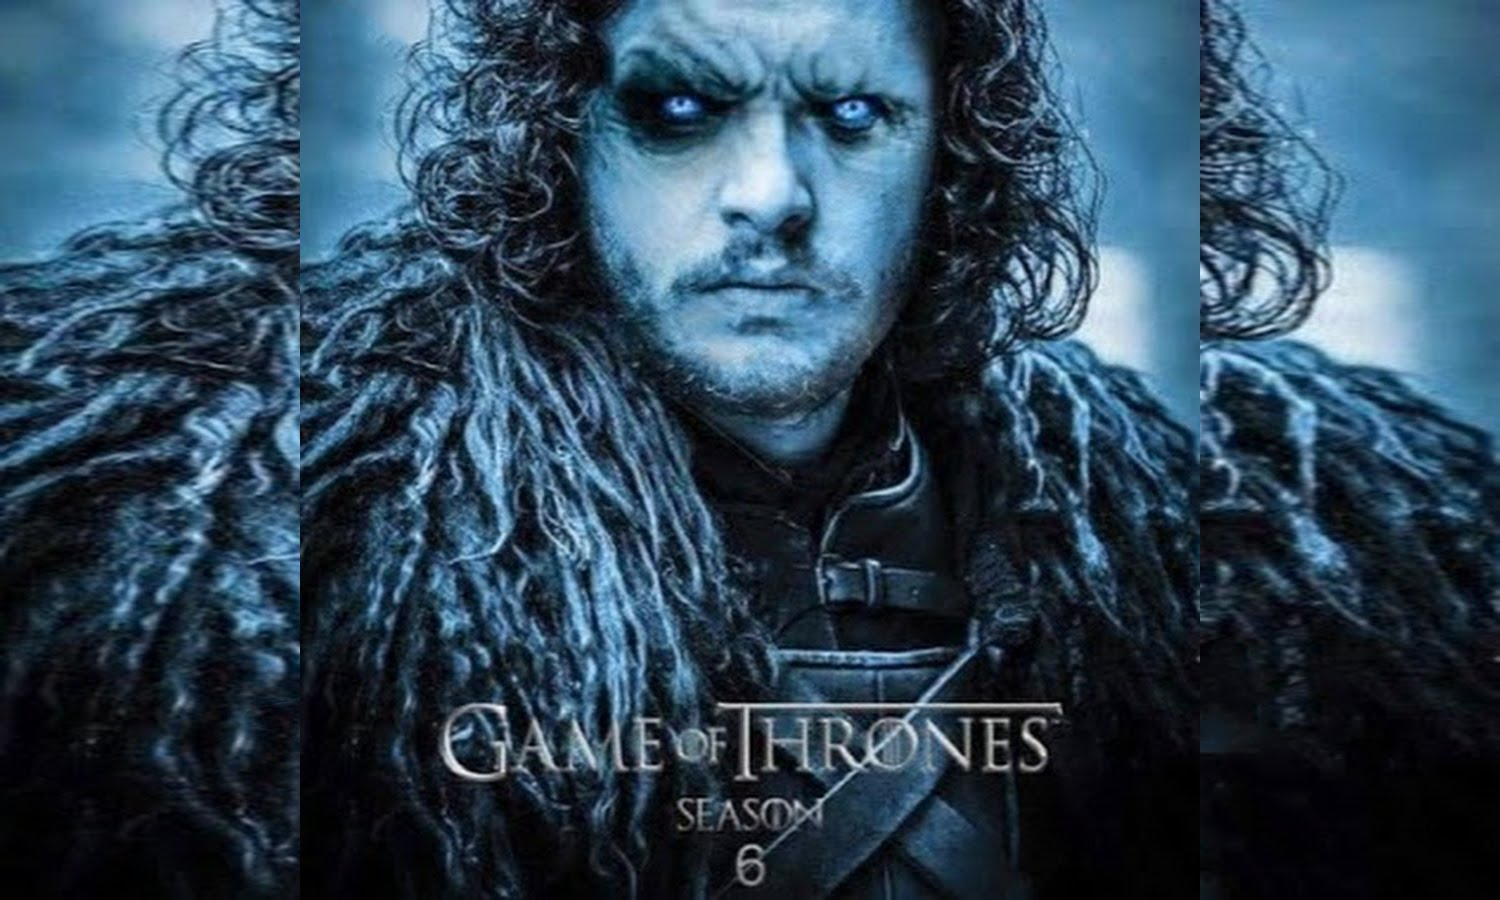 Game-of-Thrones-Season-6 (1)